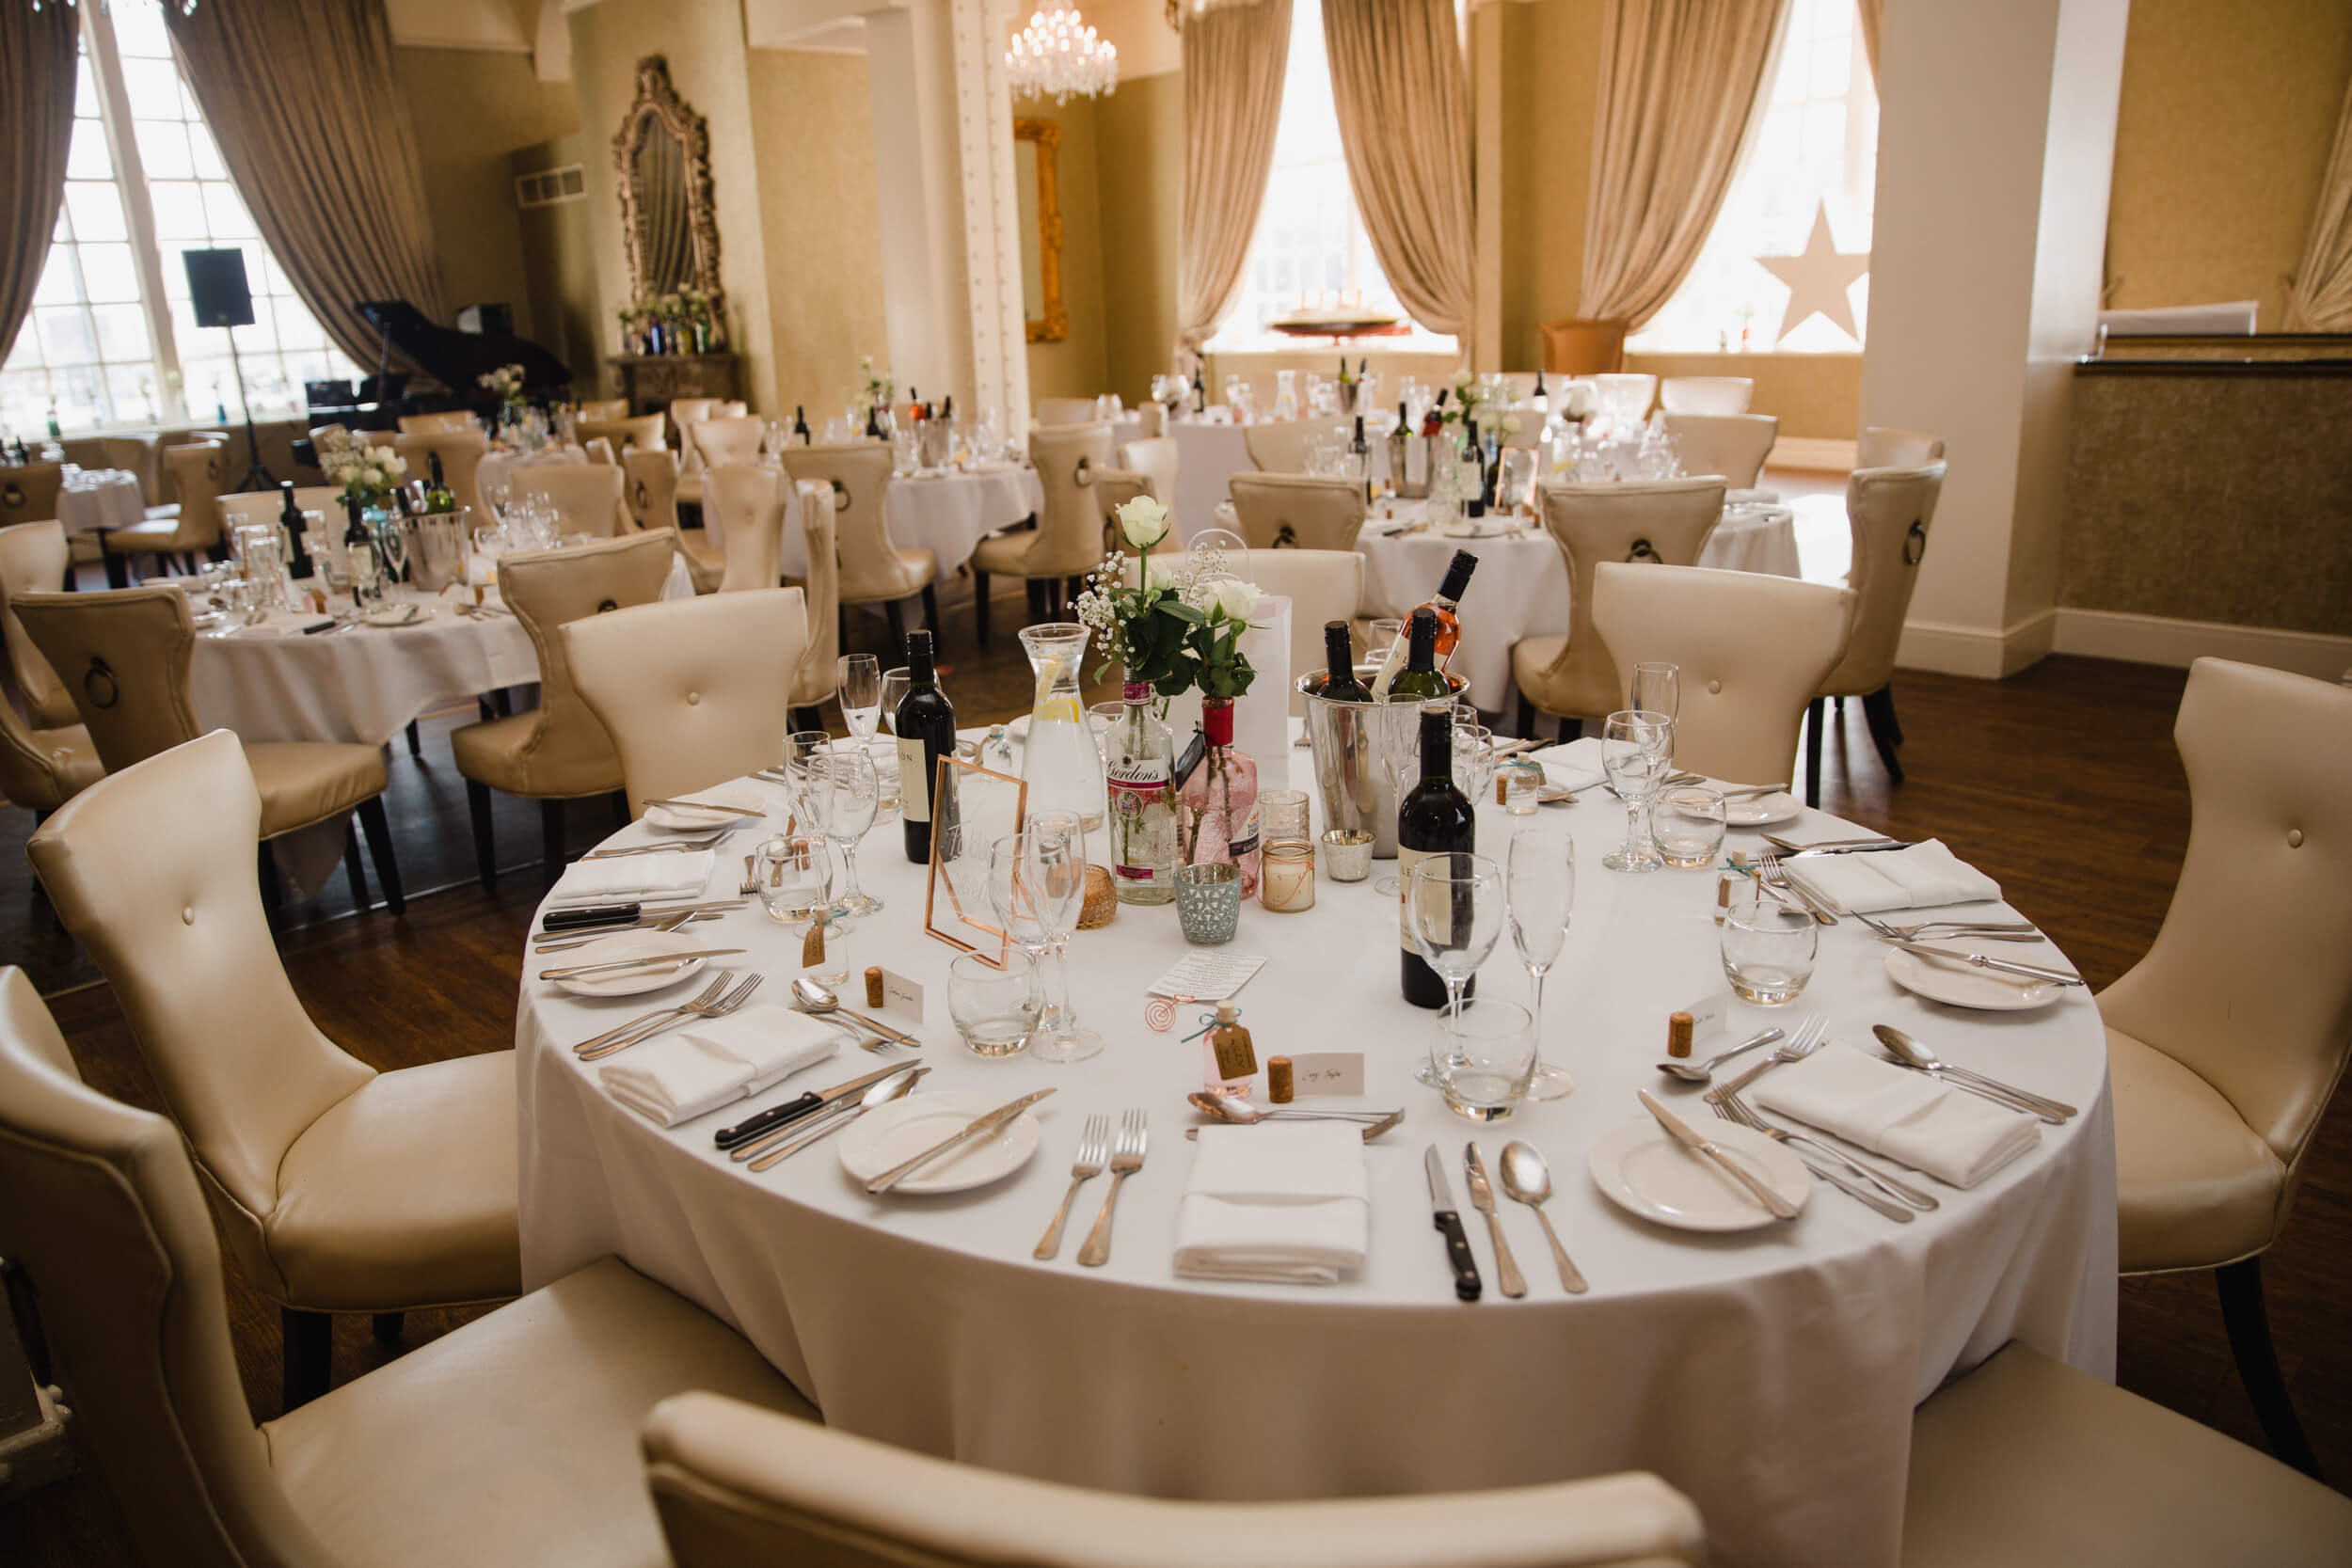 wide angle lens photograph of wedding breakfast setting